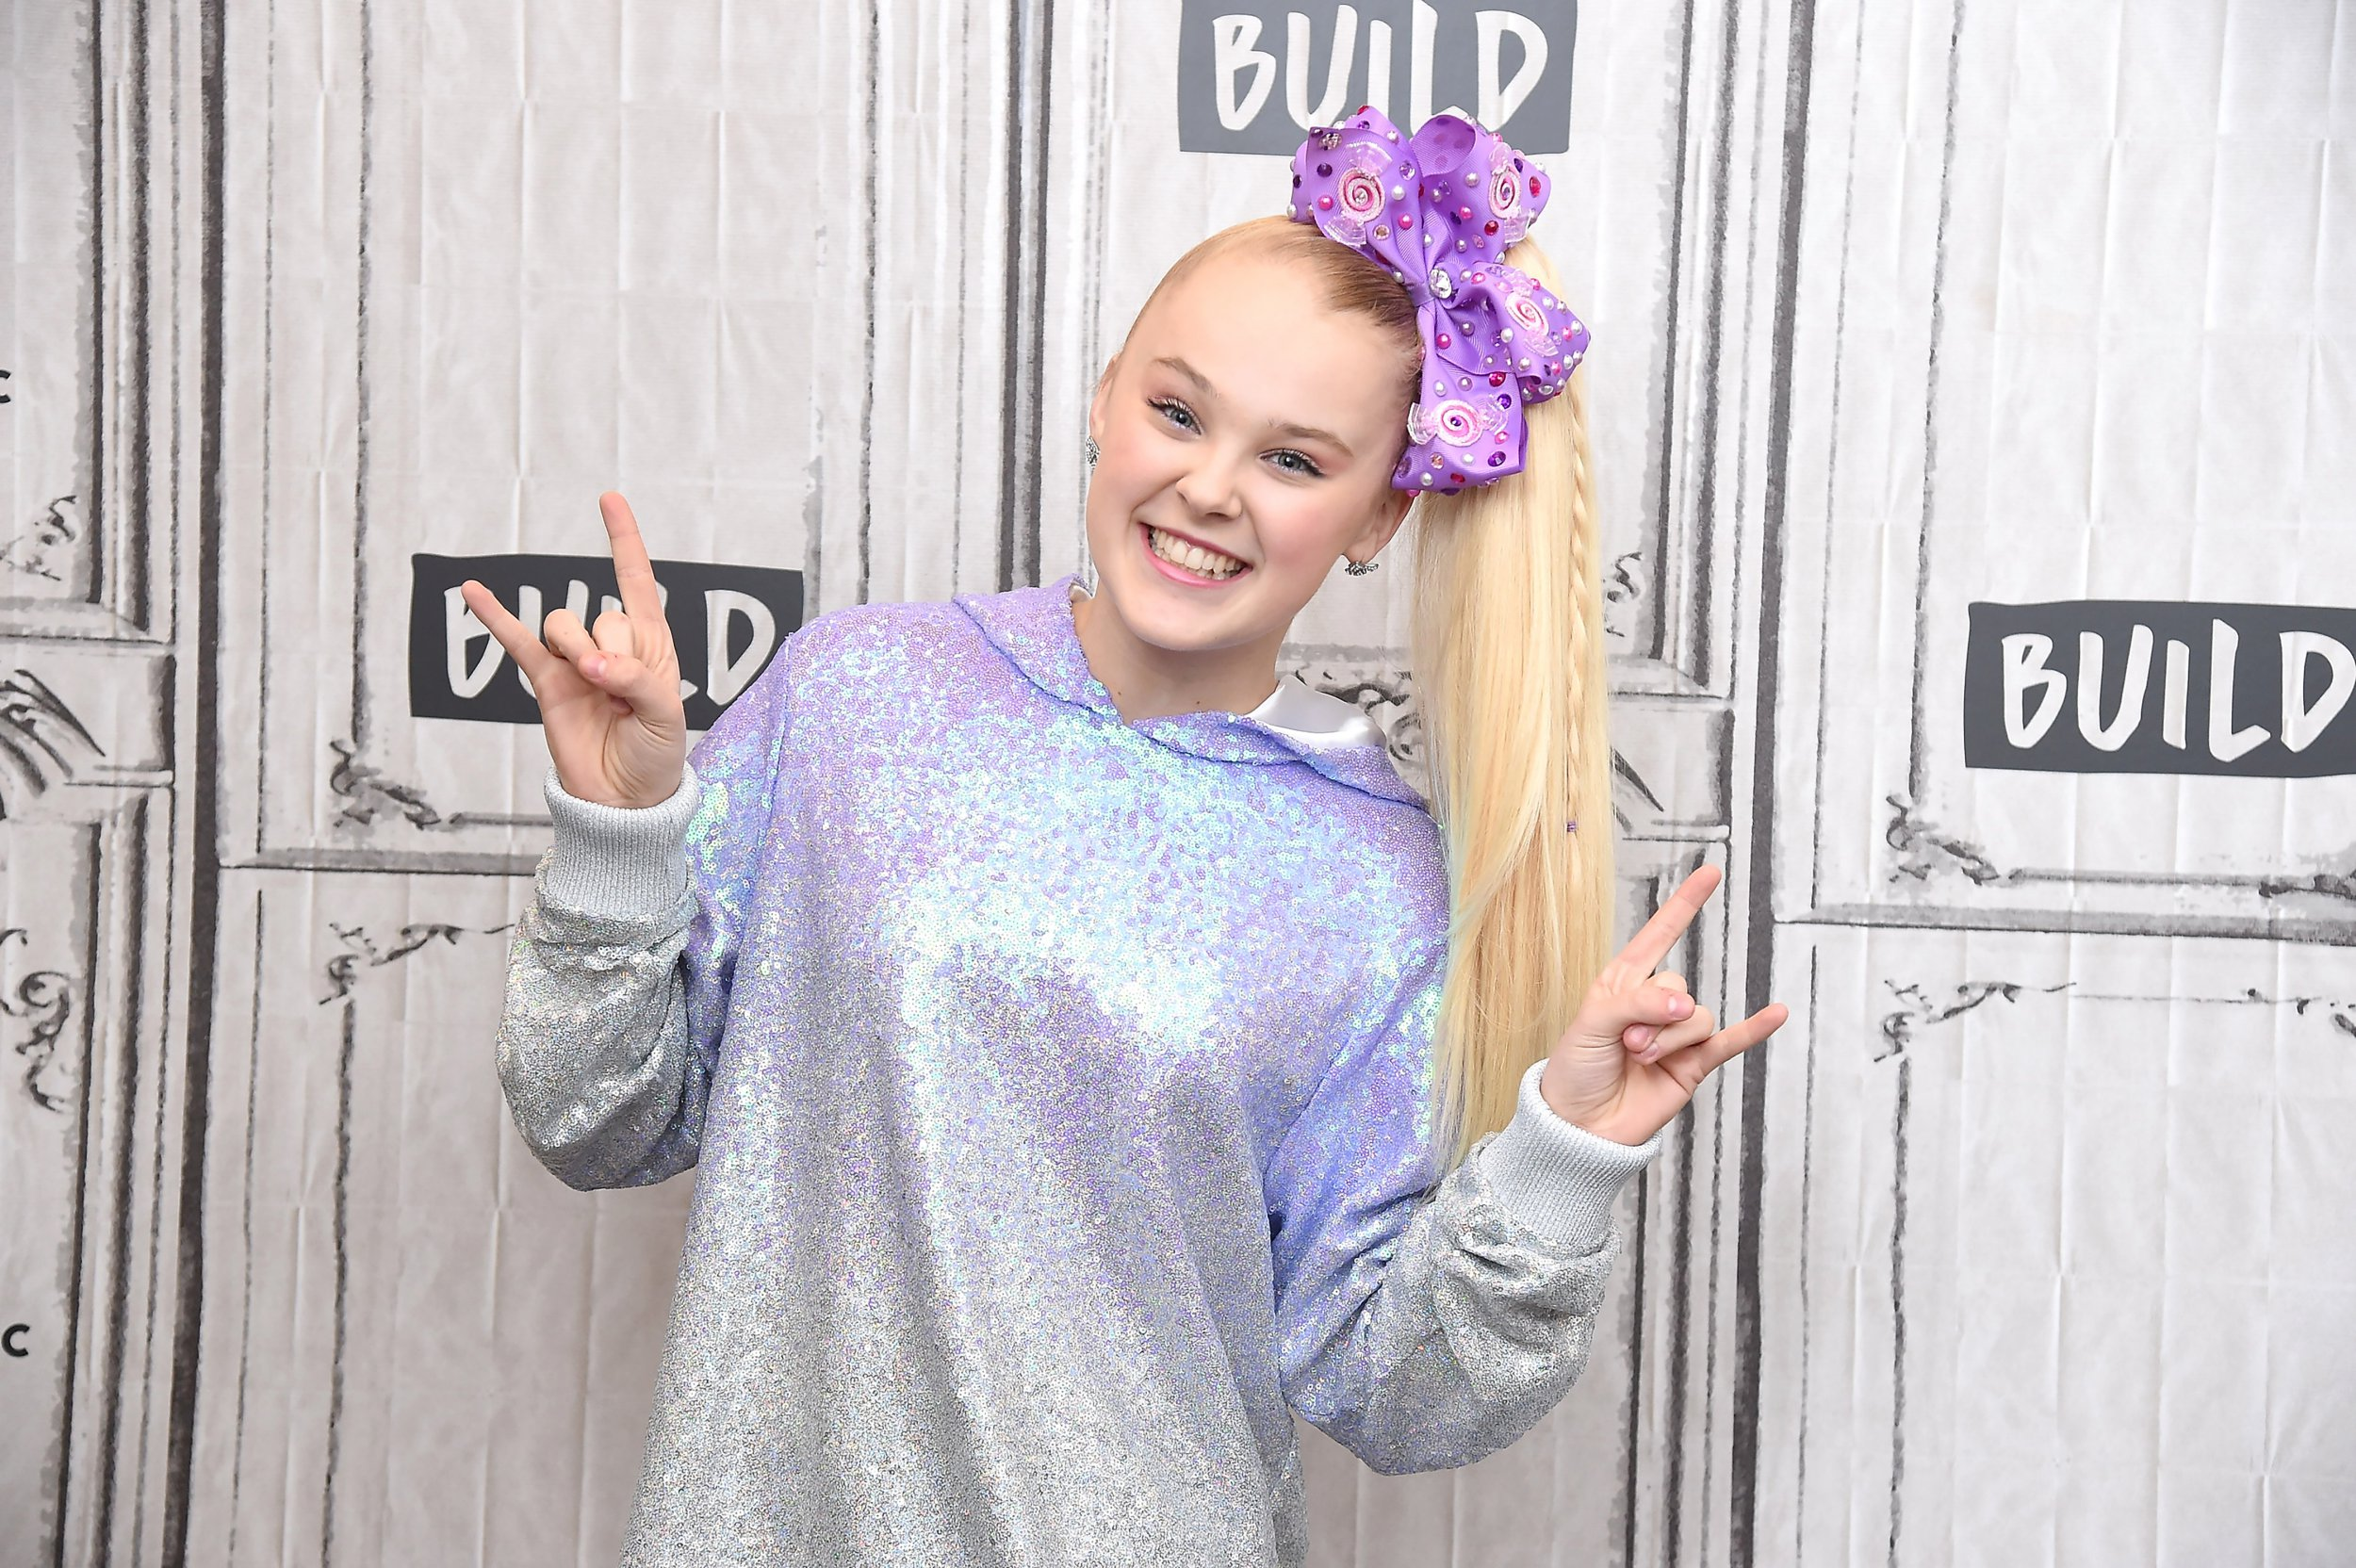 NEW YORK, NY - DECEMBER 11: Nickelodeon star JoJo Siwa visits Build Series to discuss her upcoming 'D.R.E.A.M. The Tour' at Build Studio on December 11, 2018 in New York City. (Photo by Gary Gershoff/WireImage)